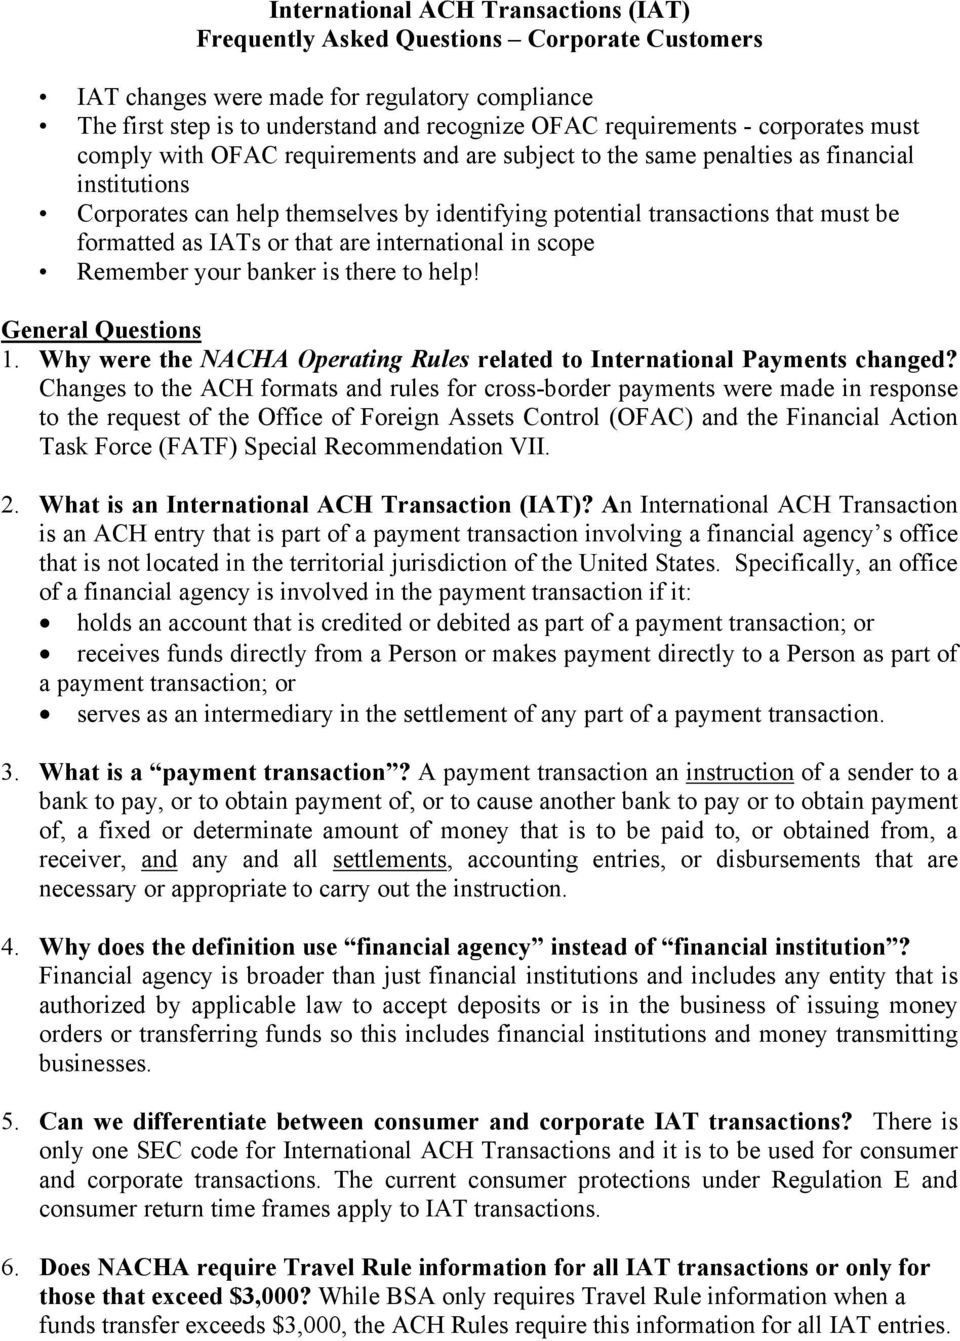 International ACH Transactions (IAT) Frequently Asked